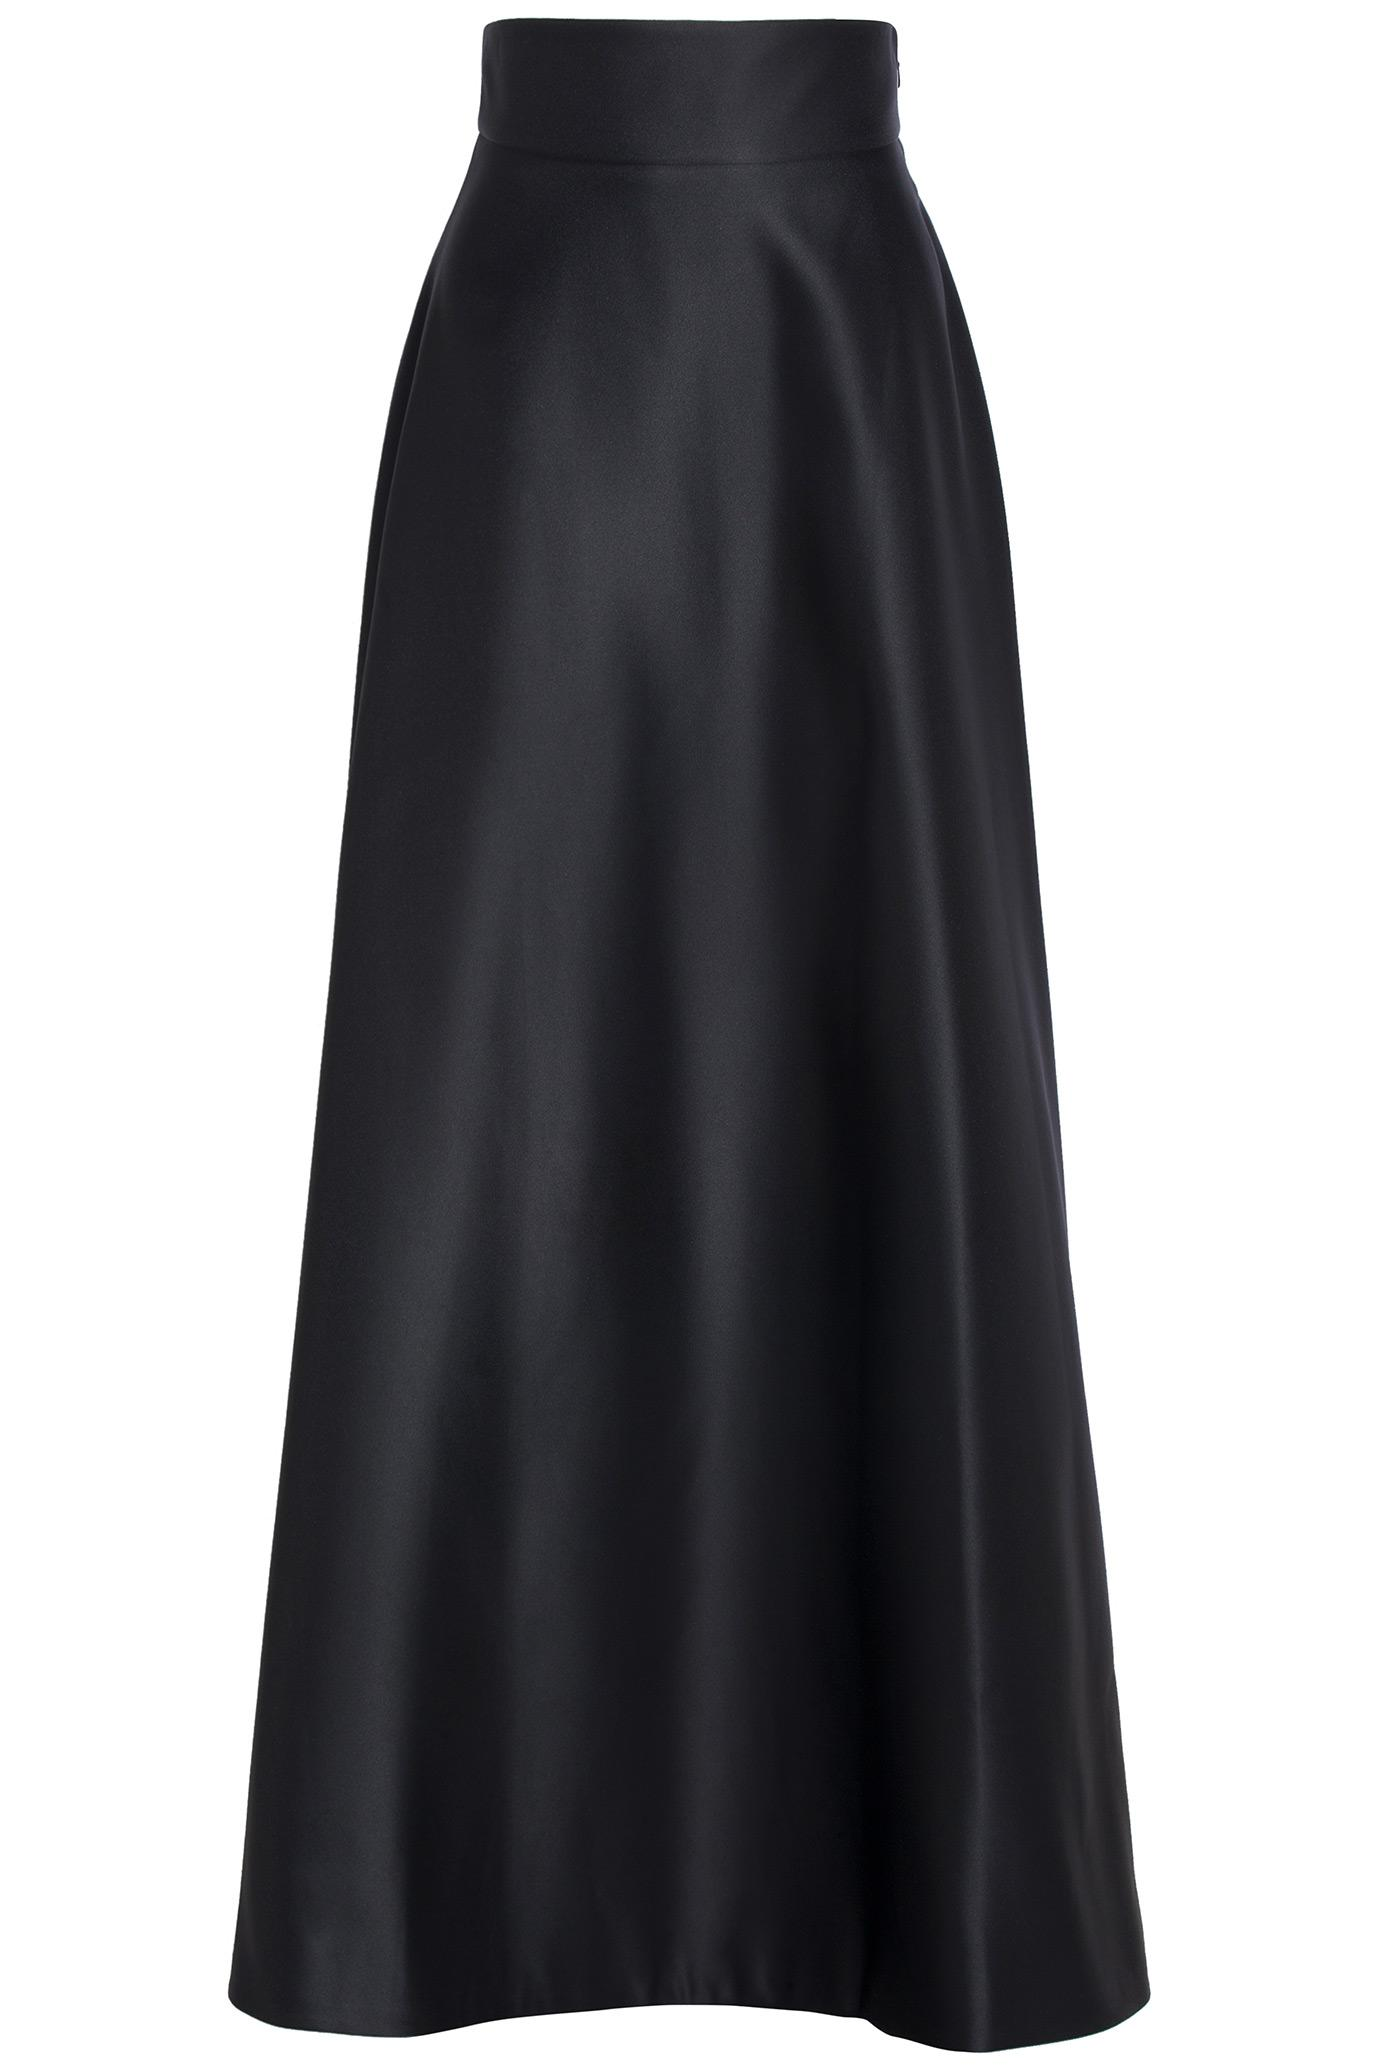 Shop eBay for great deals on Satin Long Skirts for Women. You'll find new or used products in Satin Long Skirts for Women on eBay. Free shipping on selected items.